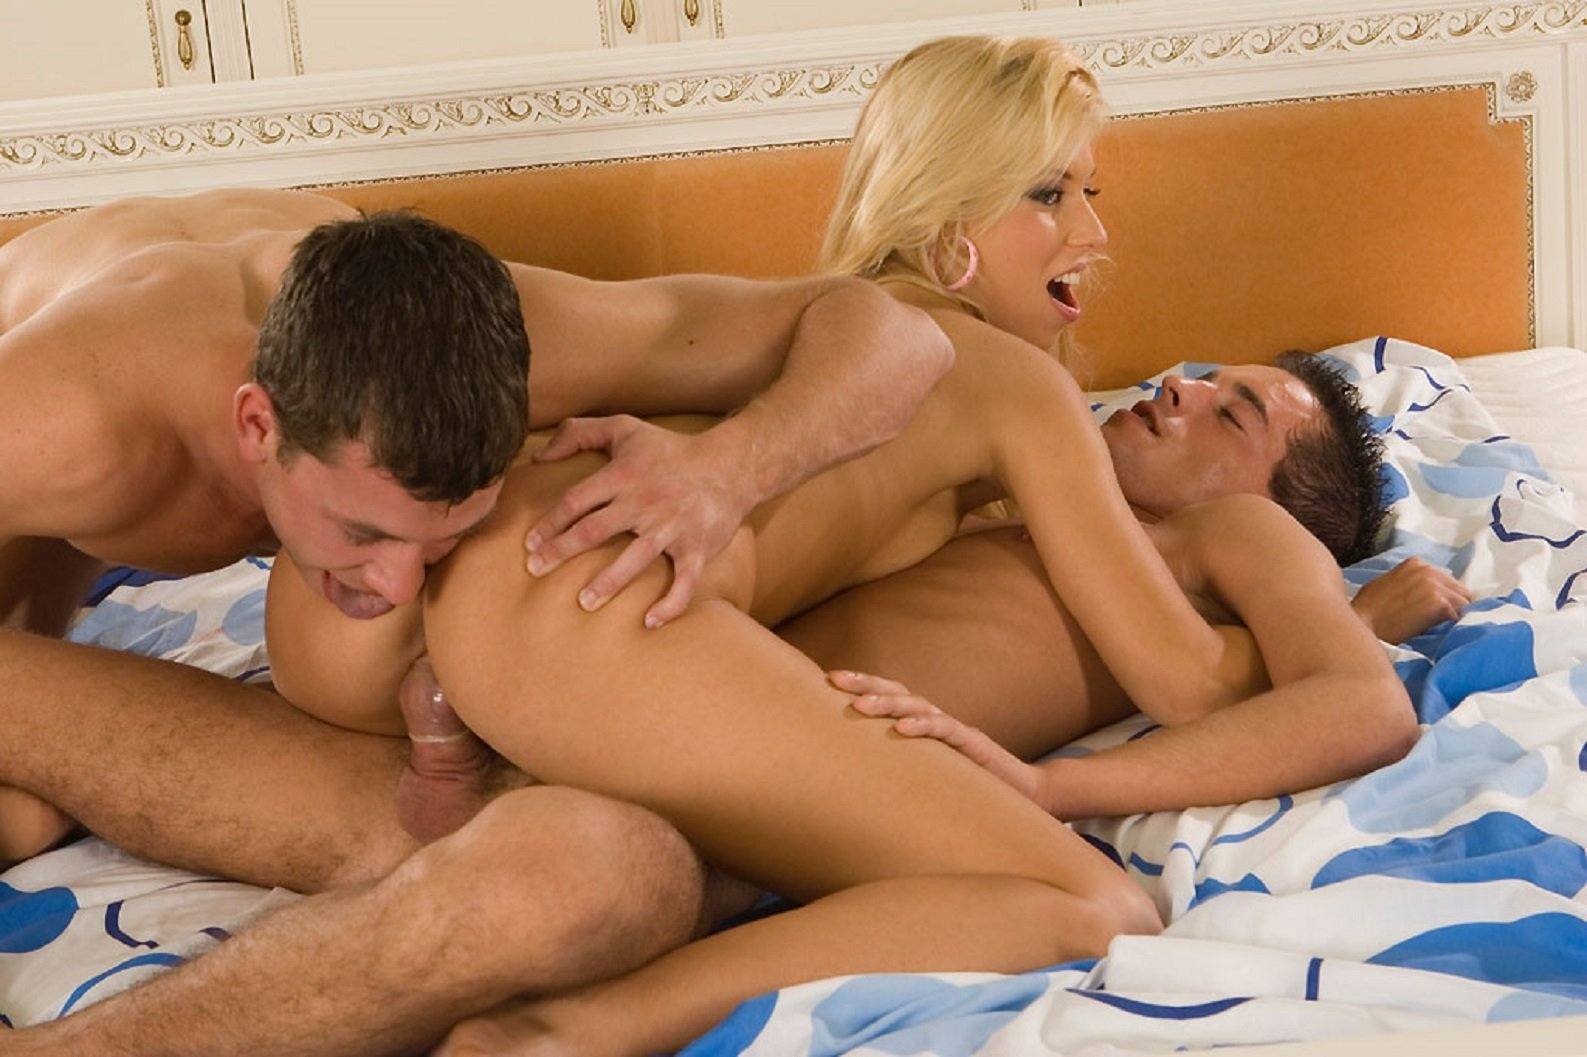 Xxx x rated bisexual porn